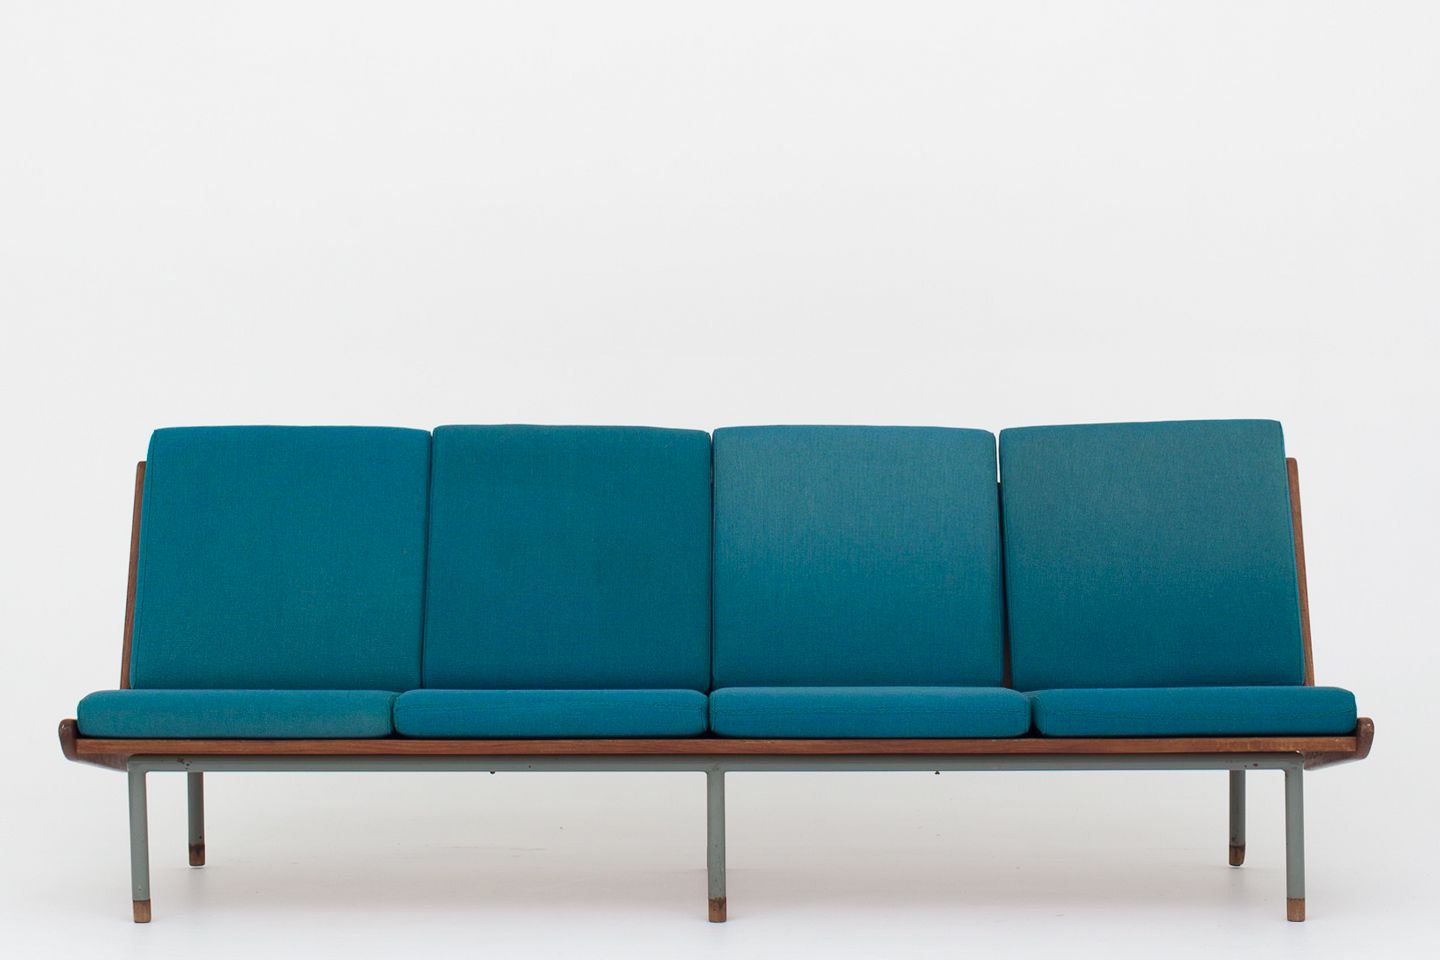 Swell Dansk Snedkermester Bench Sofa In Teak And Grey Frame W Turquoise Cushions In Hallingdal 65 Wool Feet In Teak 1 Pc In Stock Used Conditon Onthecornerstone Fun Painted Chair Ideas Images Onthecornerstoneorg